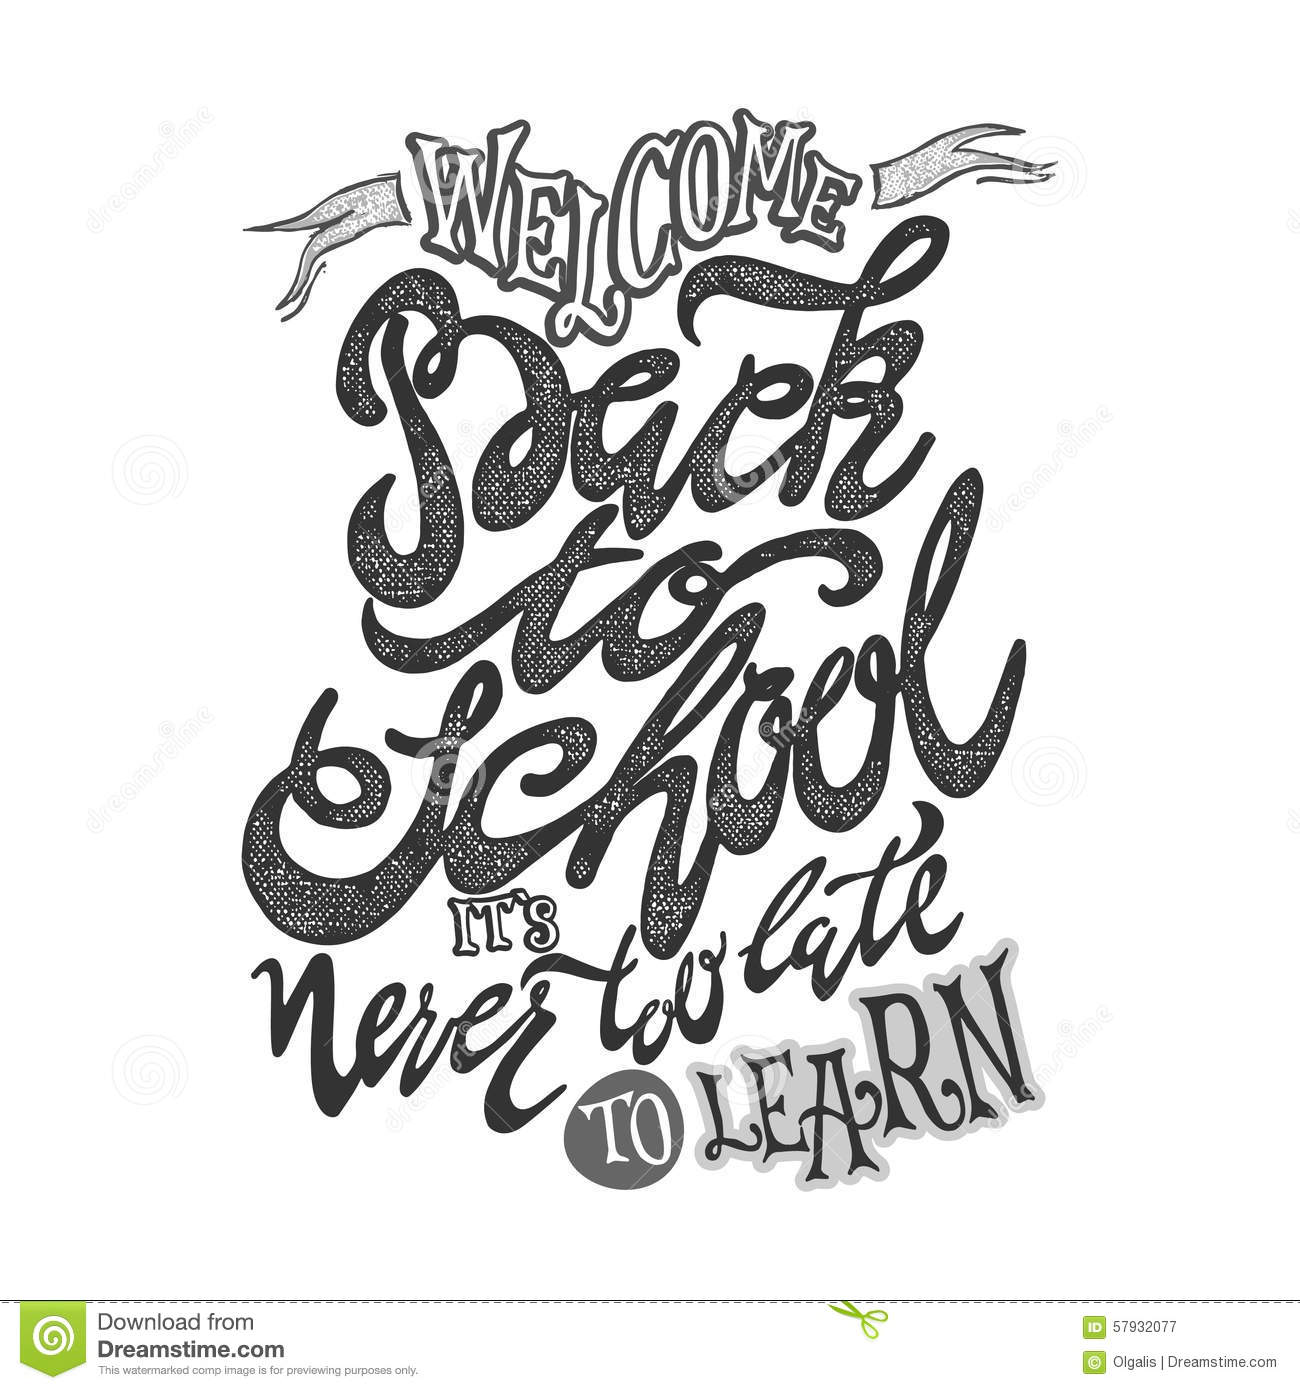 Welcome back to school hand lettering sketch background welcome back to school hand lettering sketch background altavistaventures Image collections